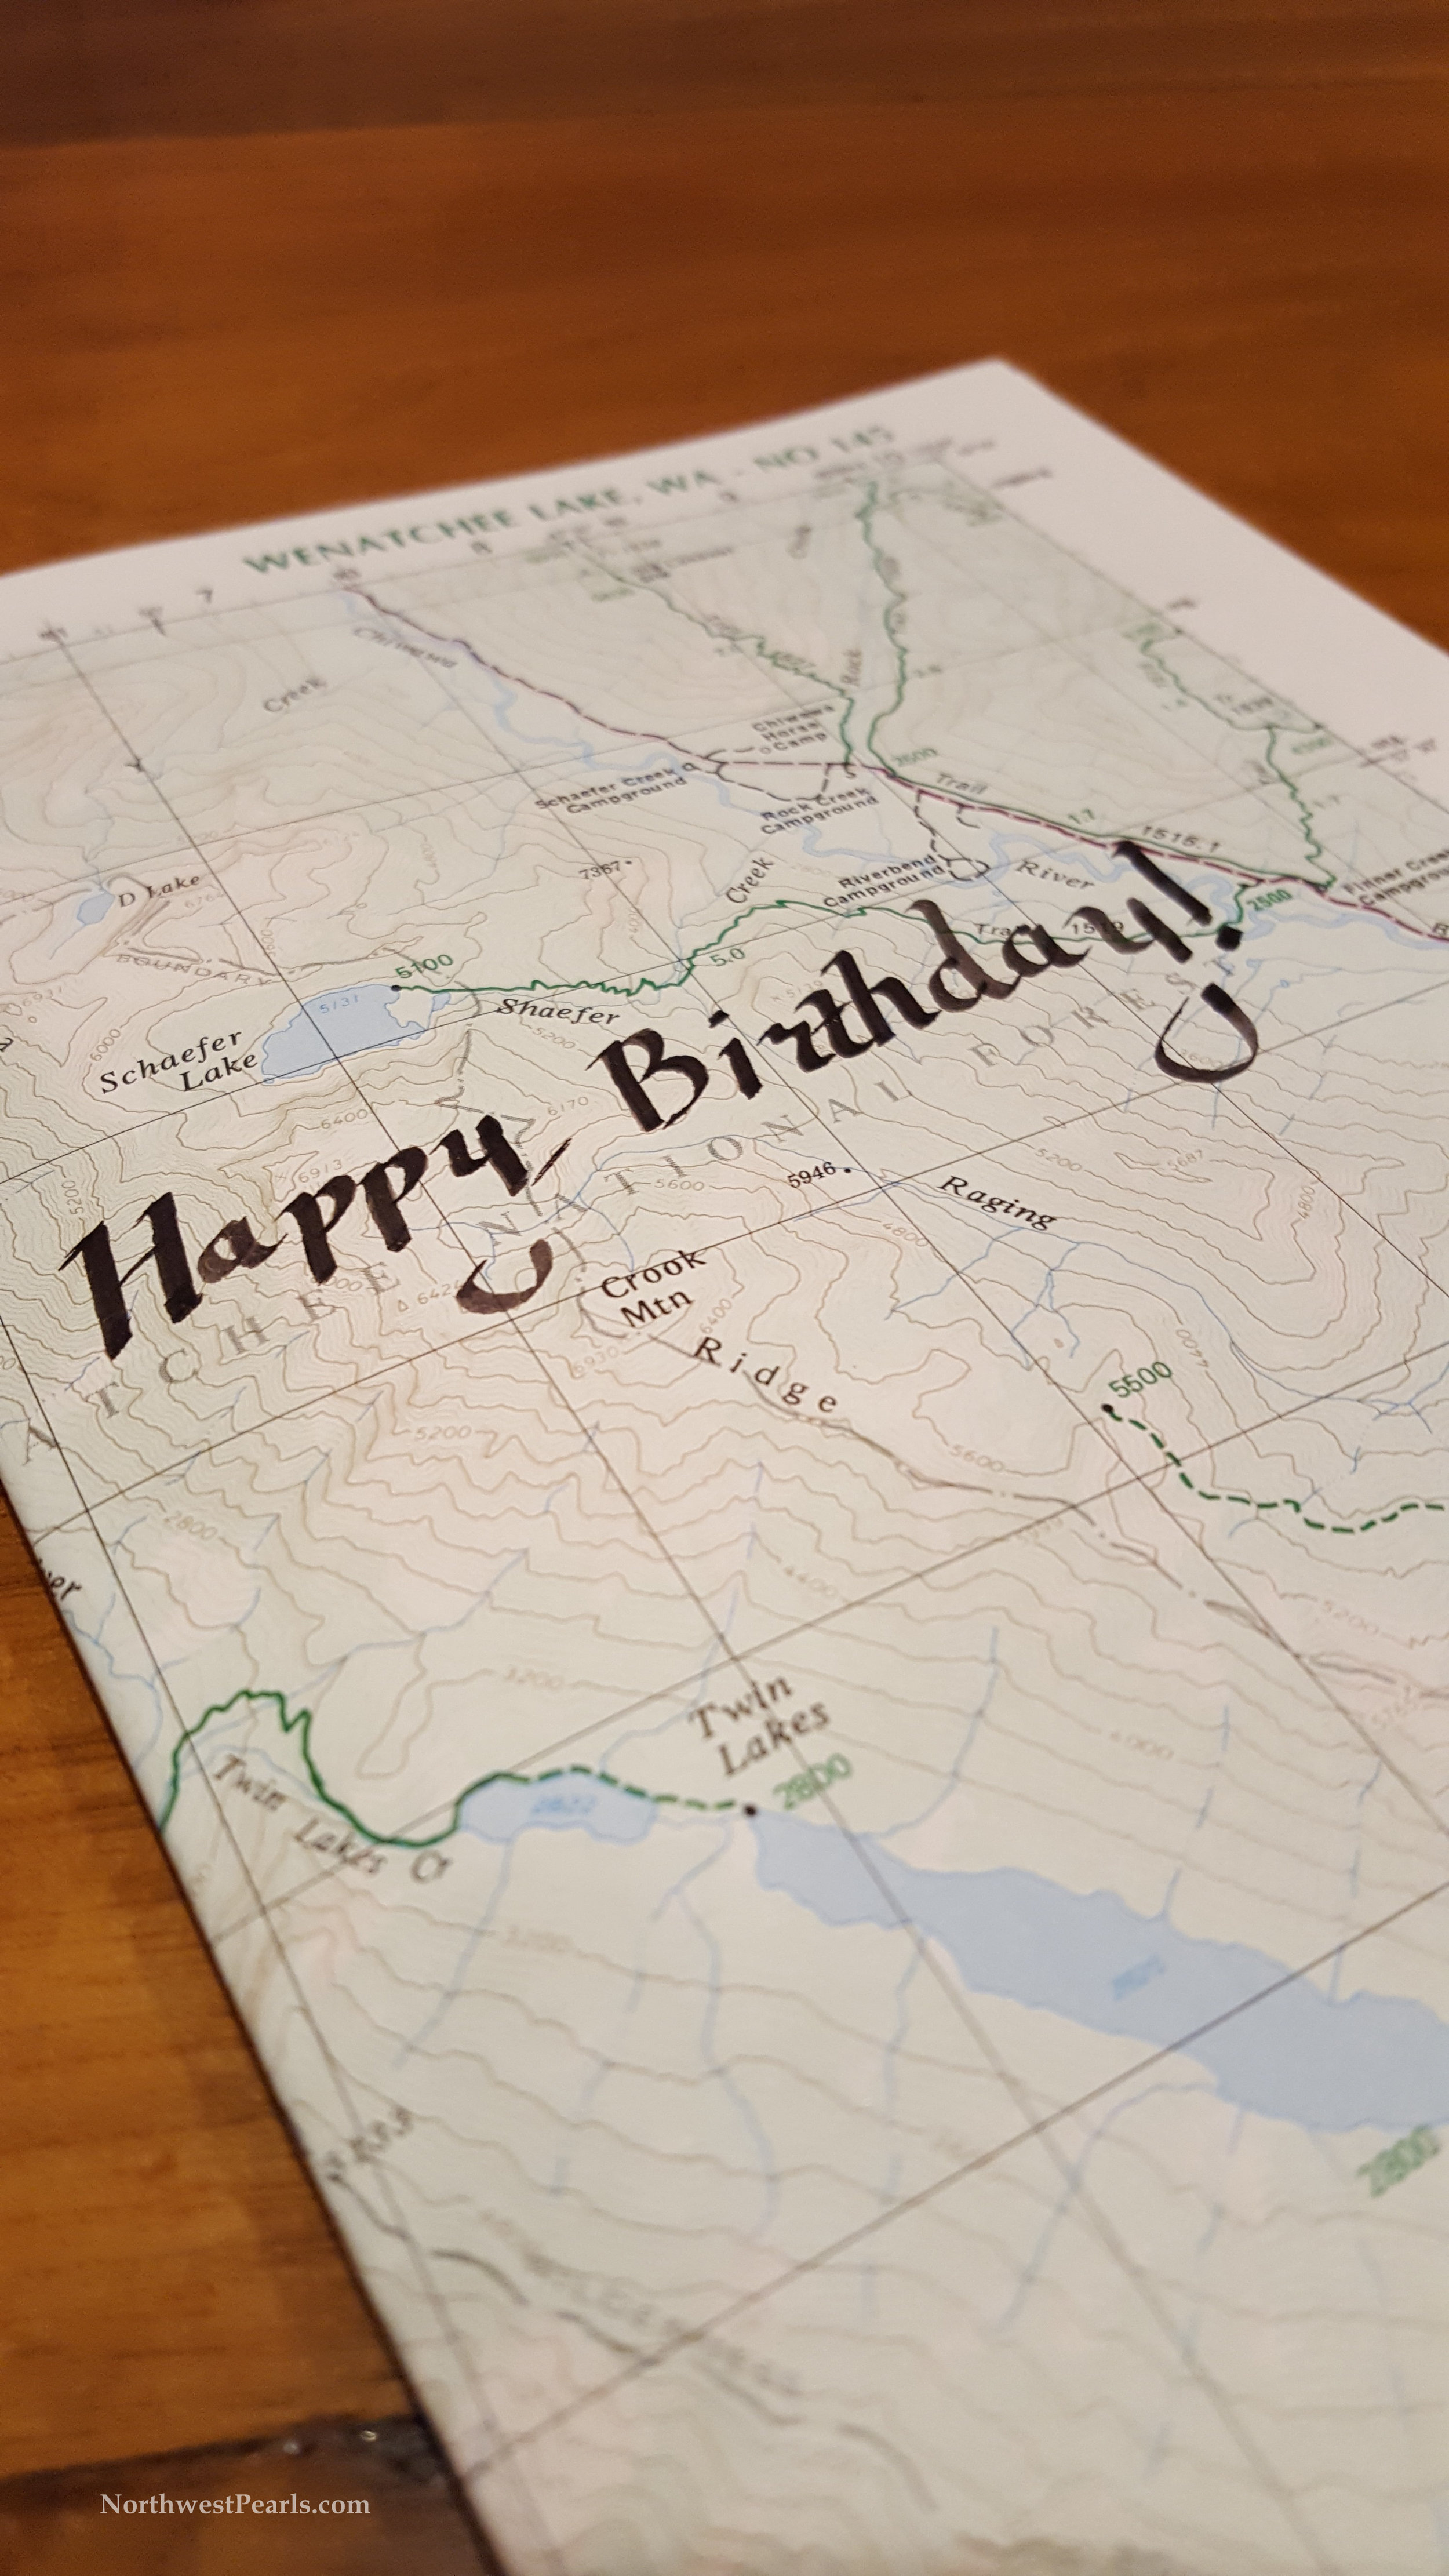 Northwest Pearls: Birthday Card Map